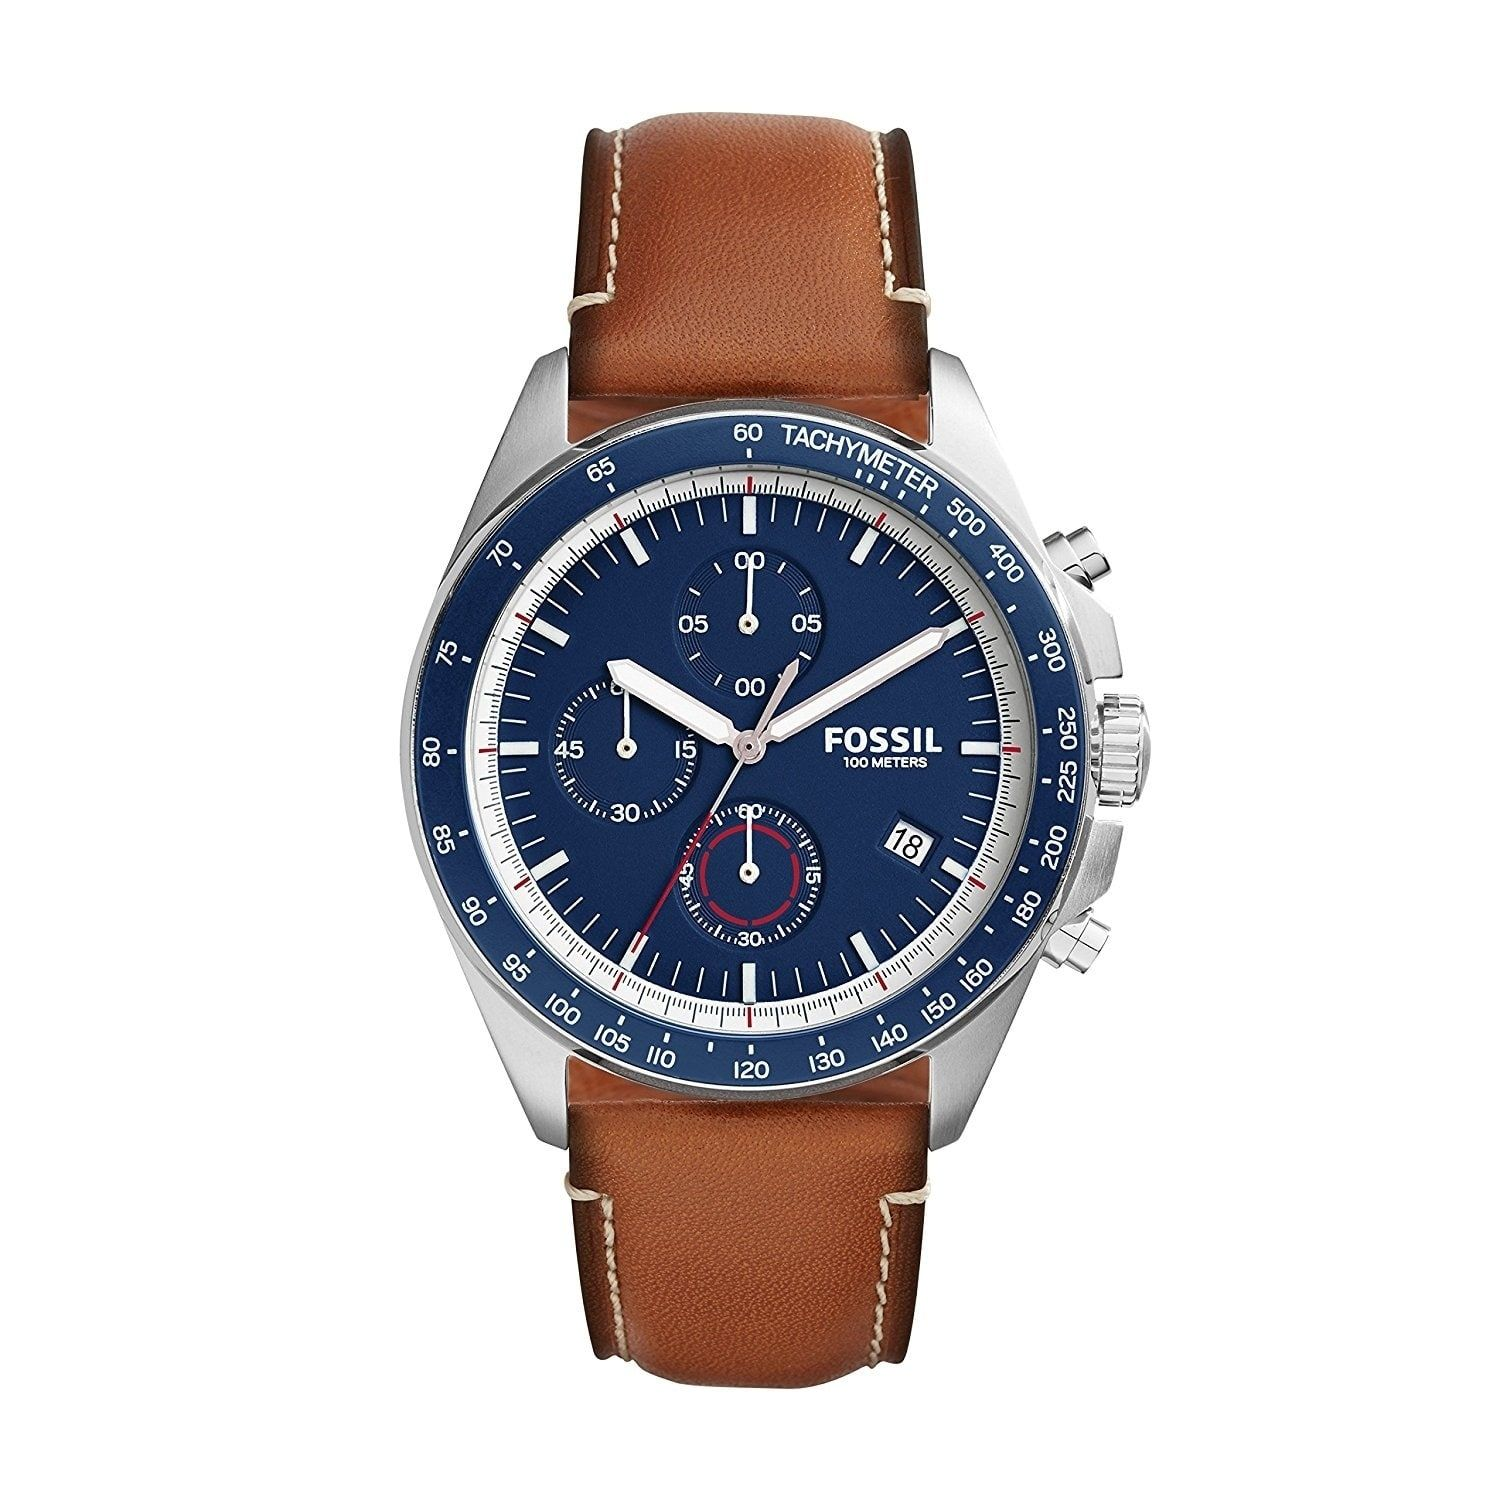 Fossil Men's Sport 54 Chronograph Blue Dial Brown Leather